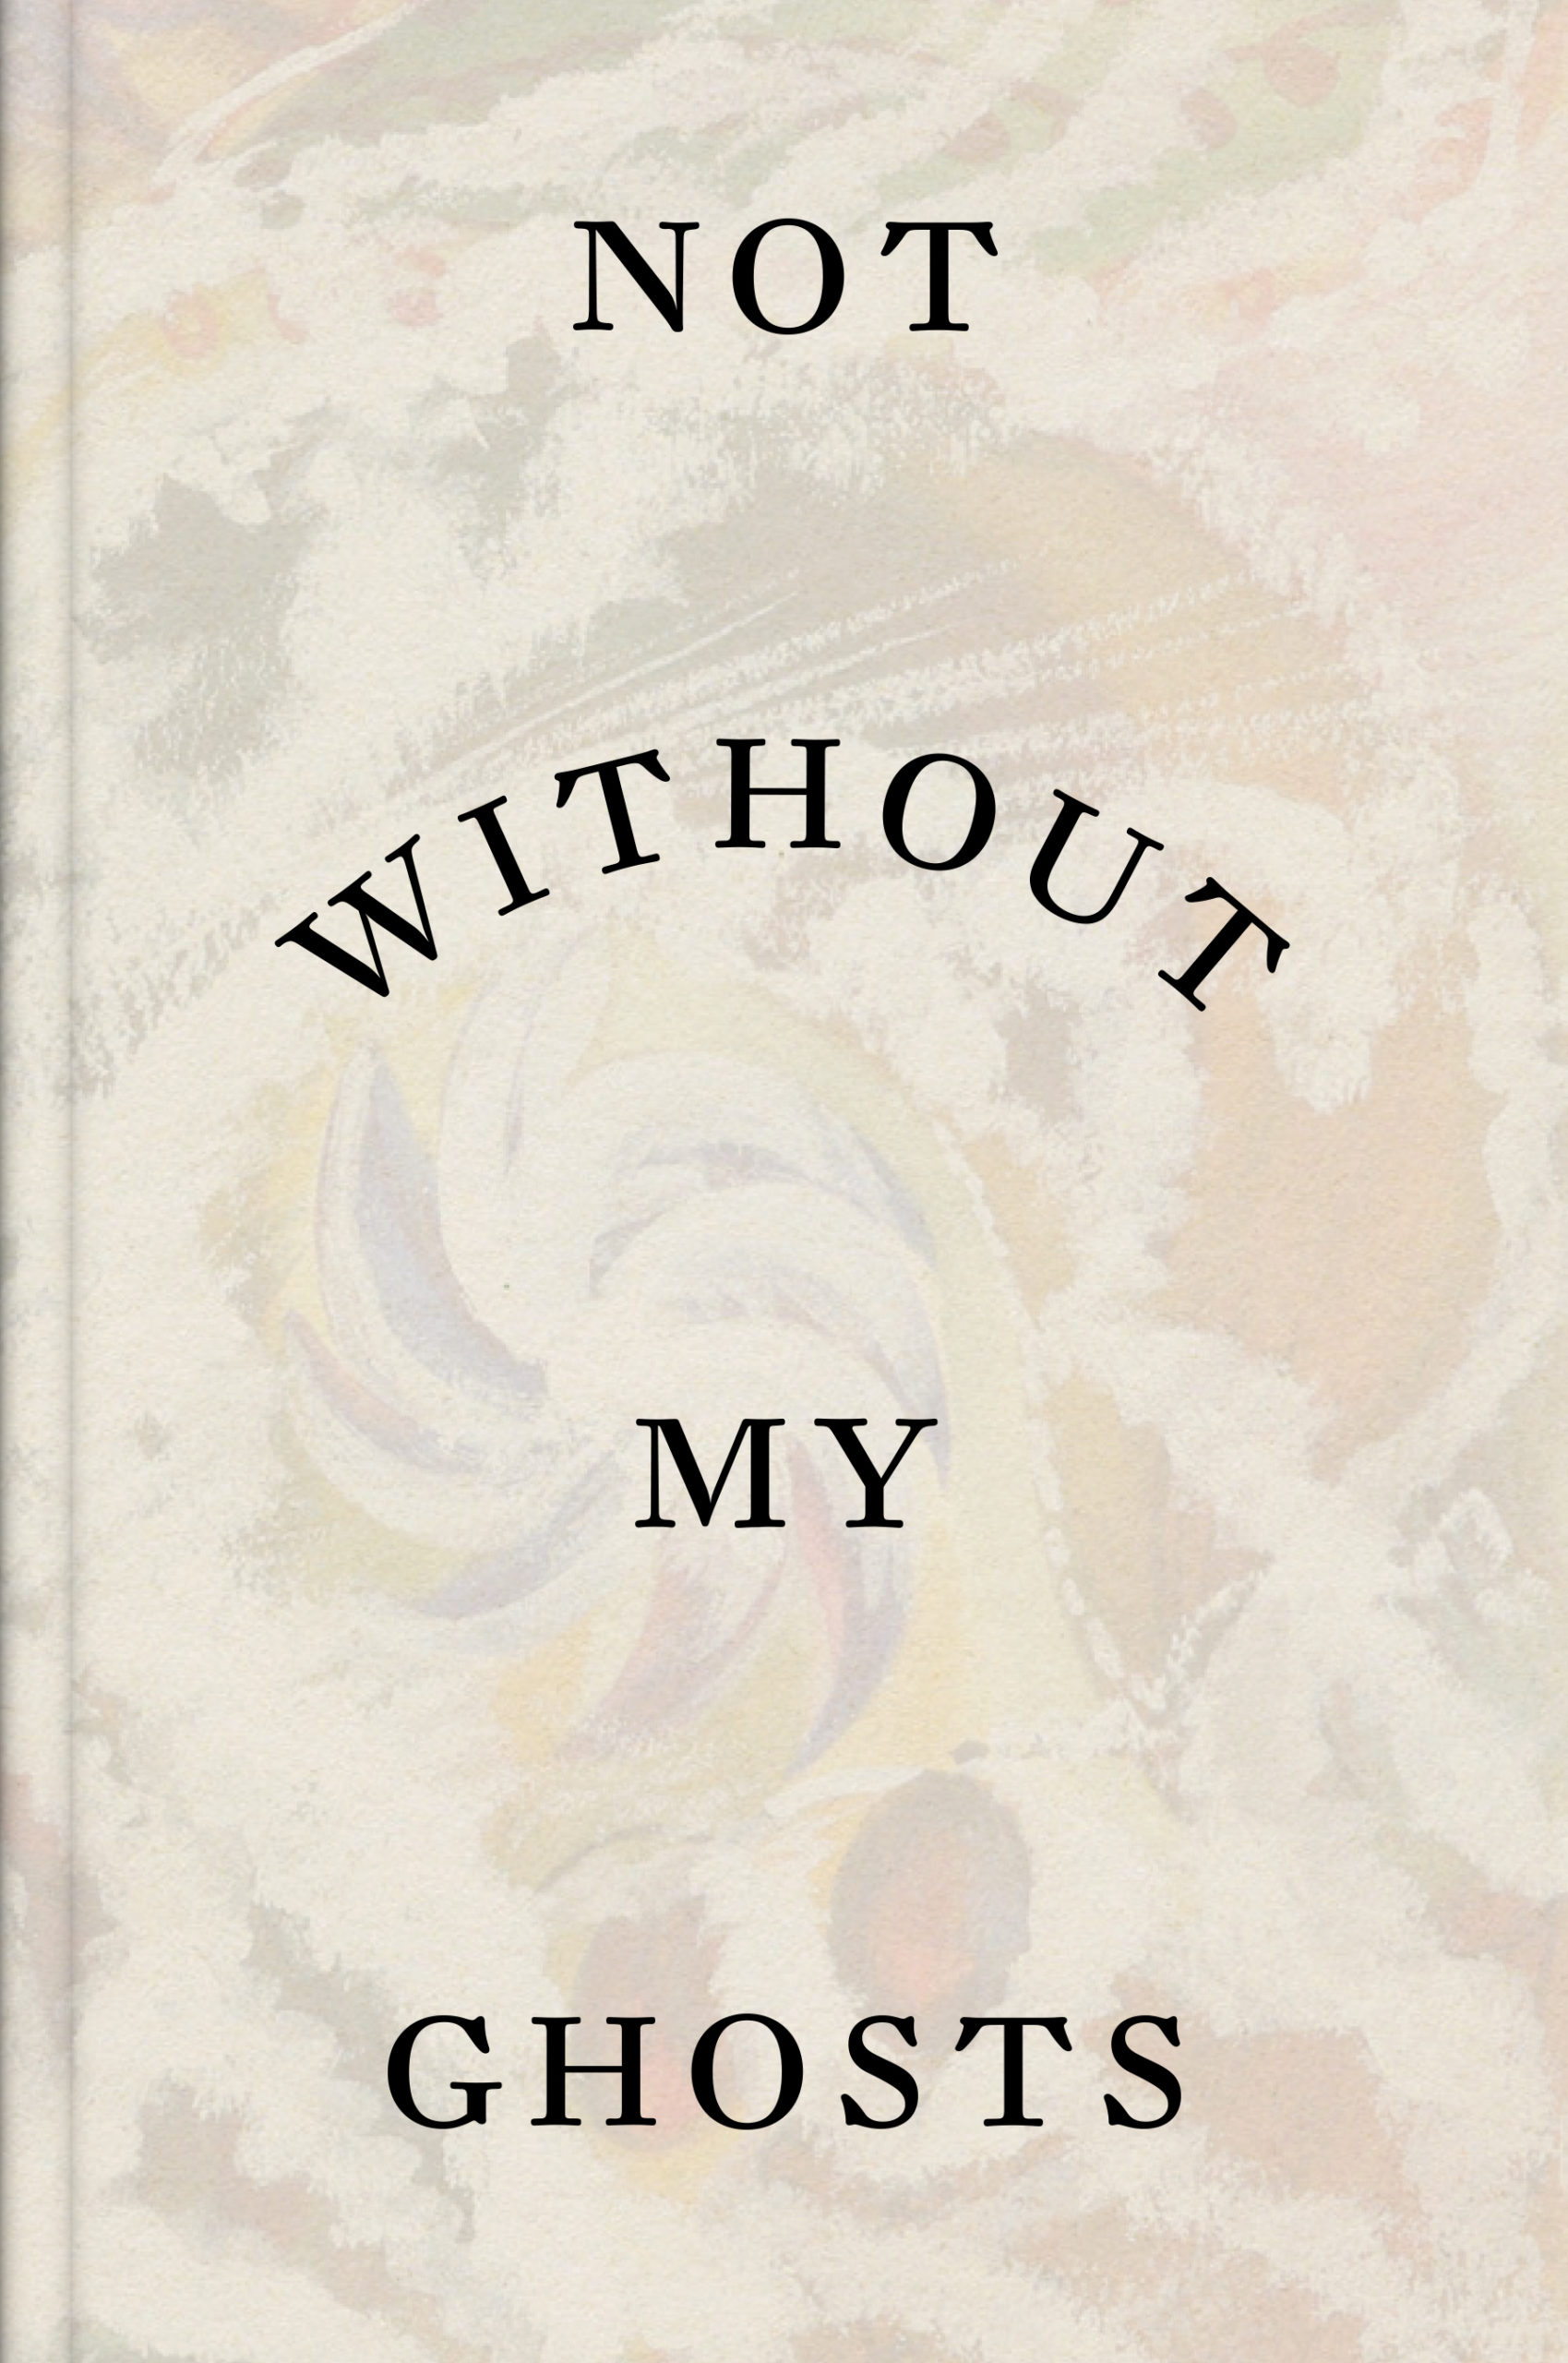 Not Without My Ghosts - Cornerhouse Publications